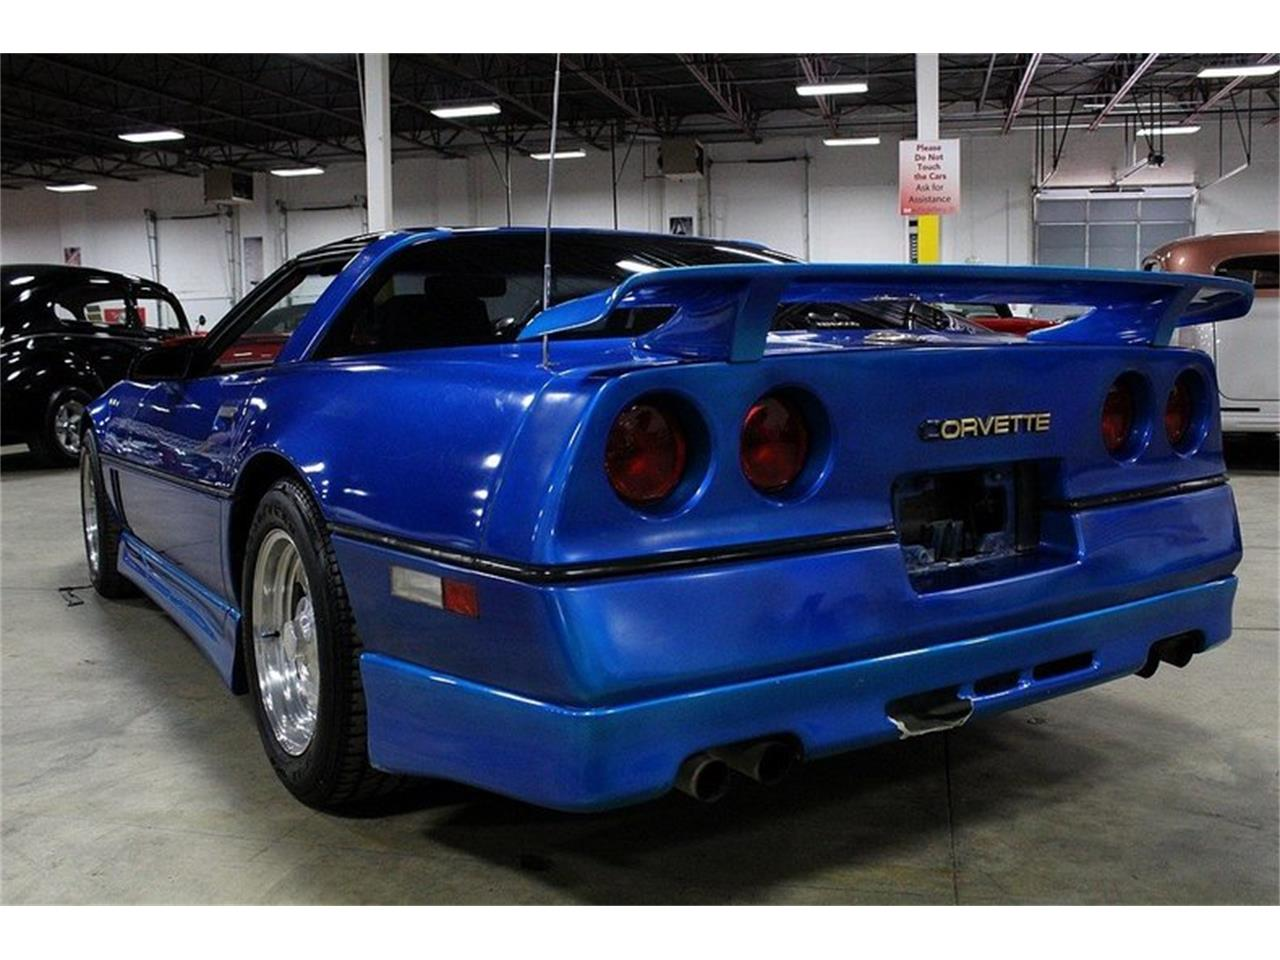 Large Picture of '85 Corvette - $9,900.00 Offered by GR Auto Gallery - LBV1